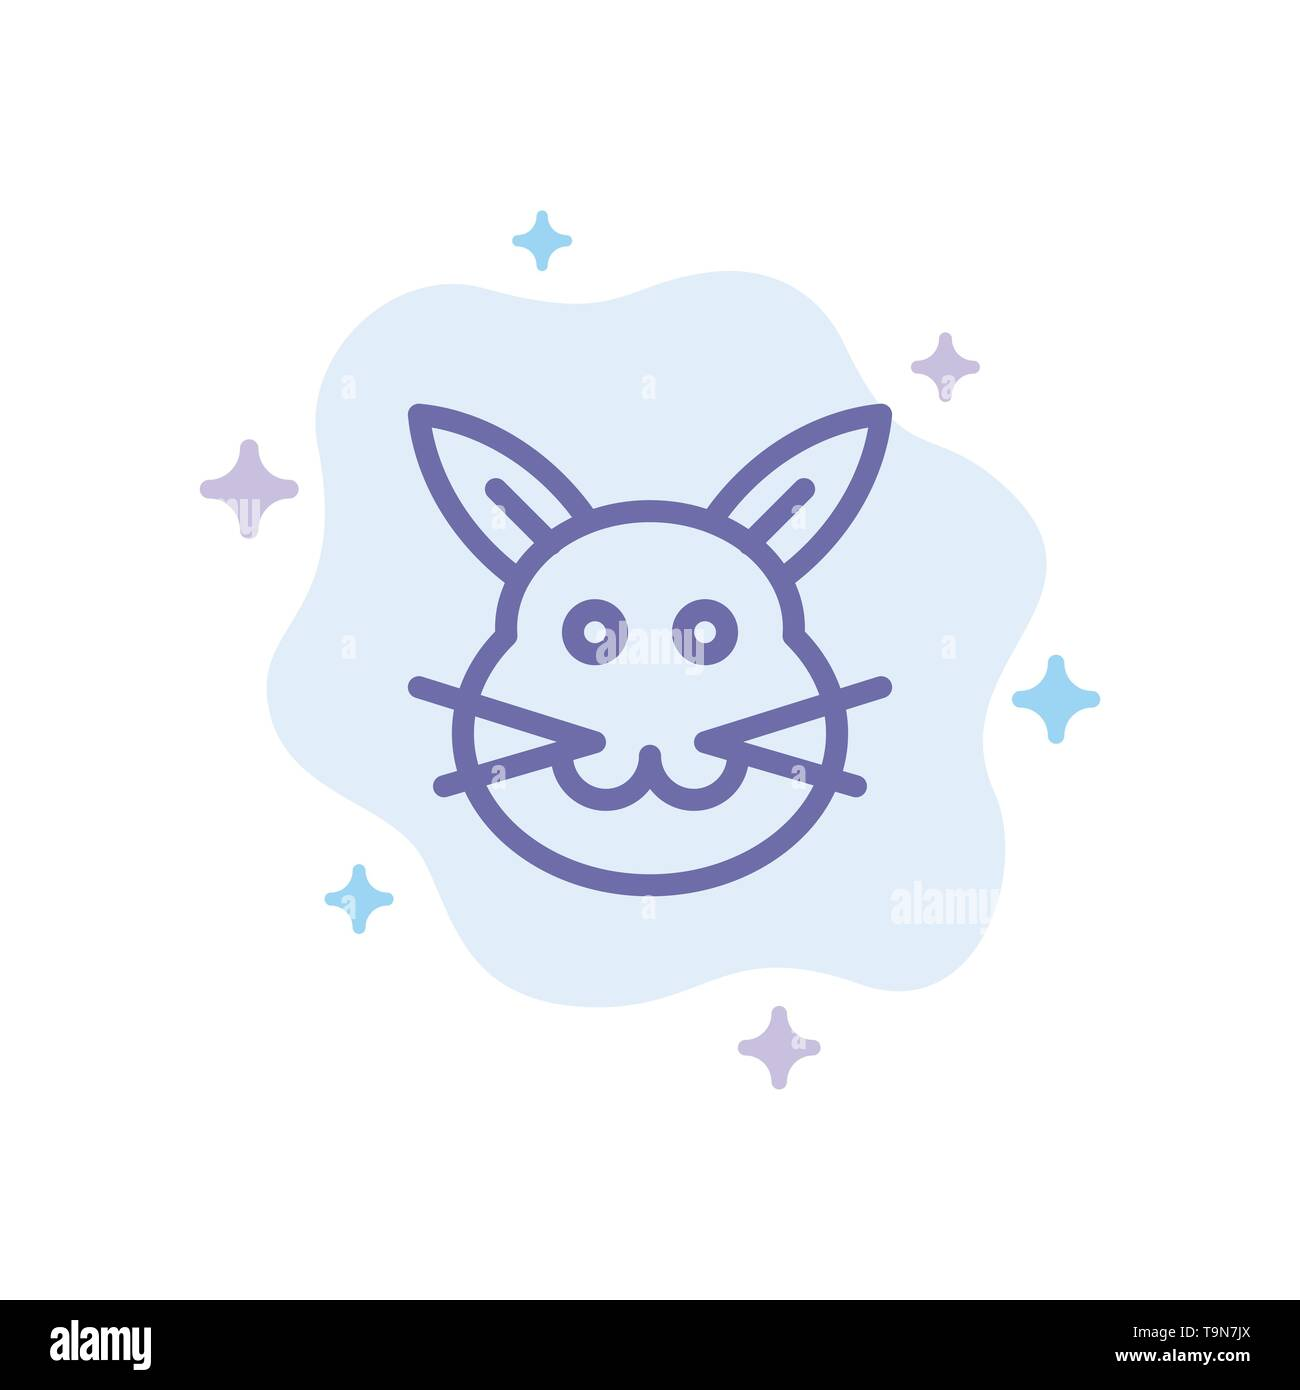 Bunny, Bunny, Easter, Rabbit Blue Icon on Abstract Cloud Background - Stock Image